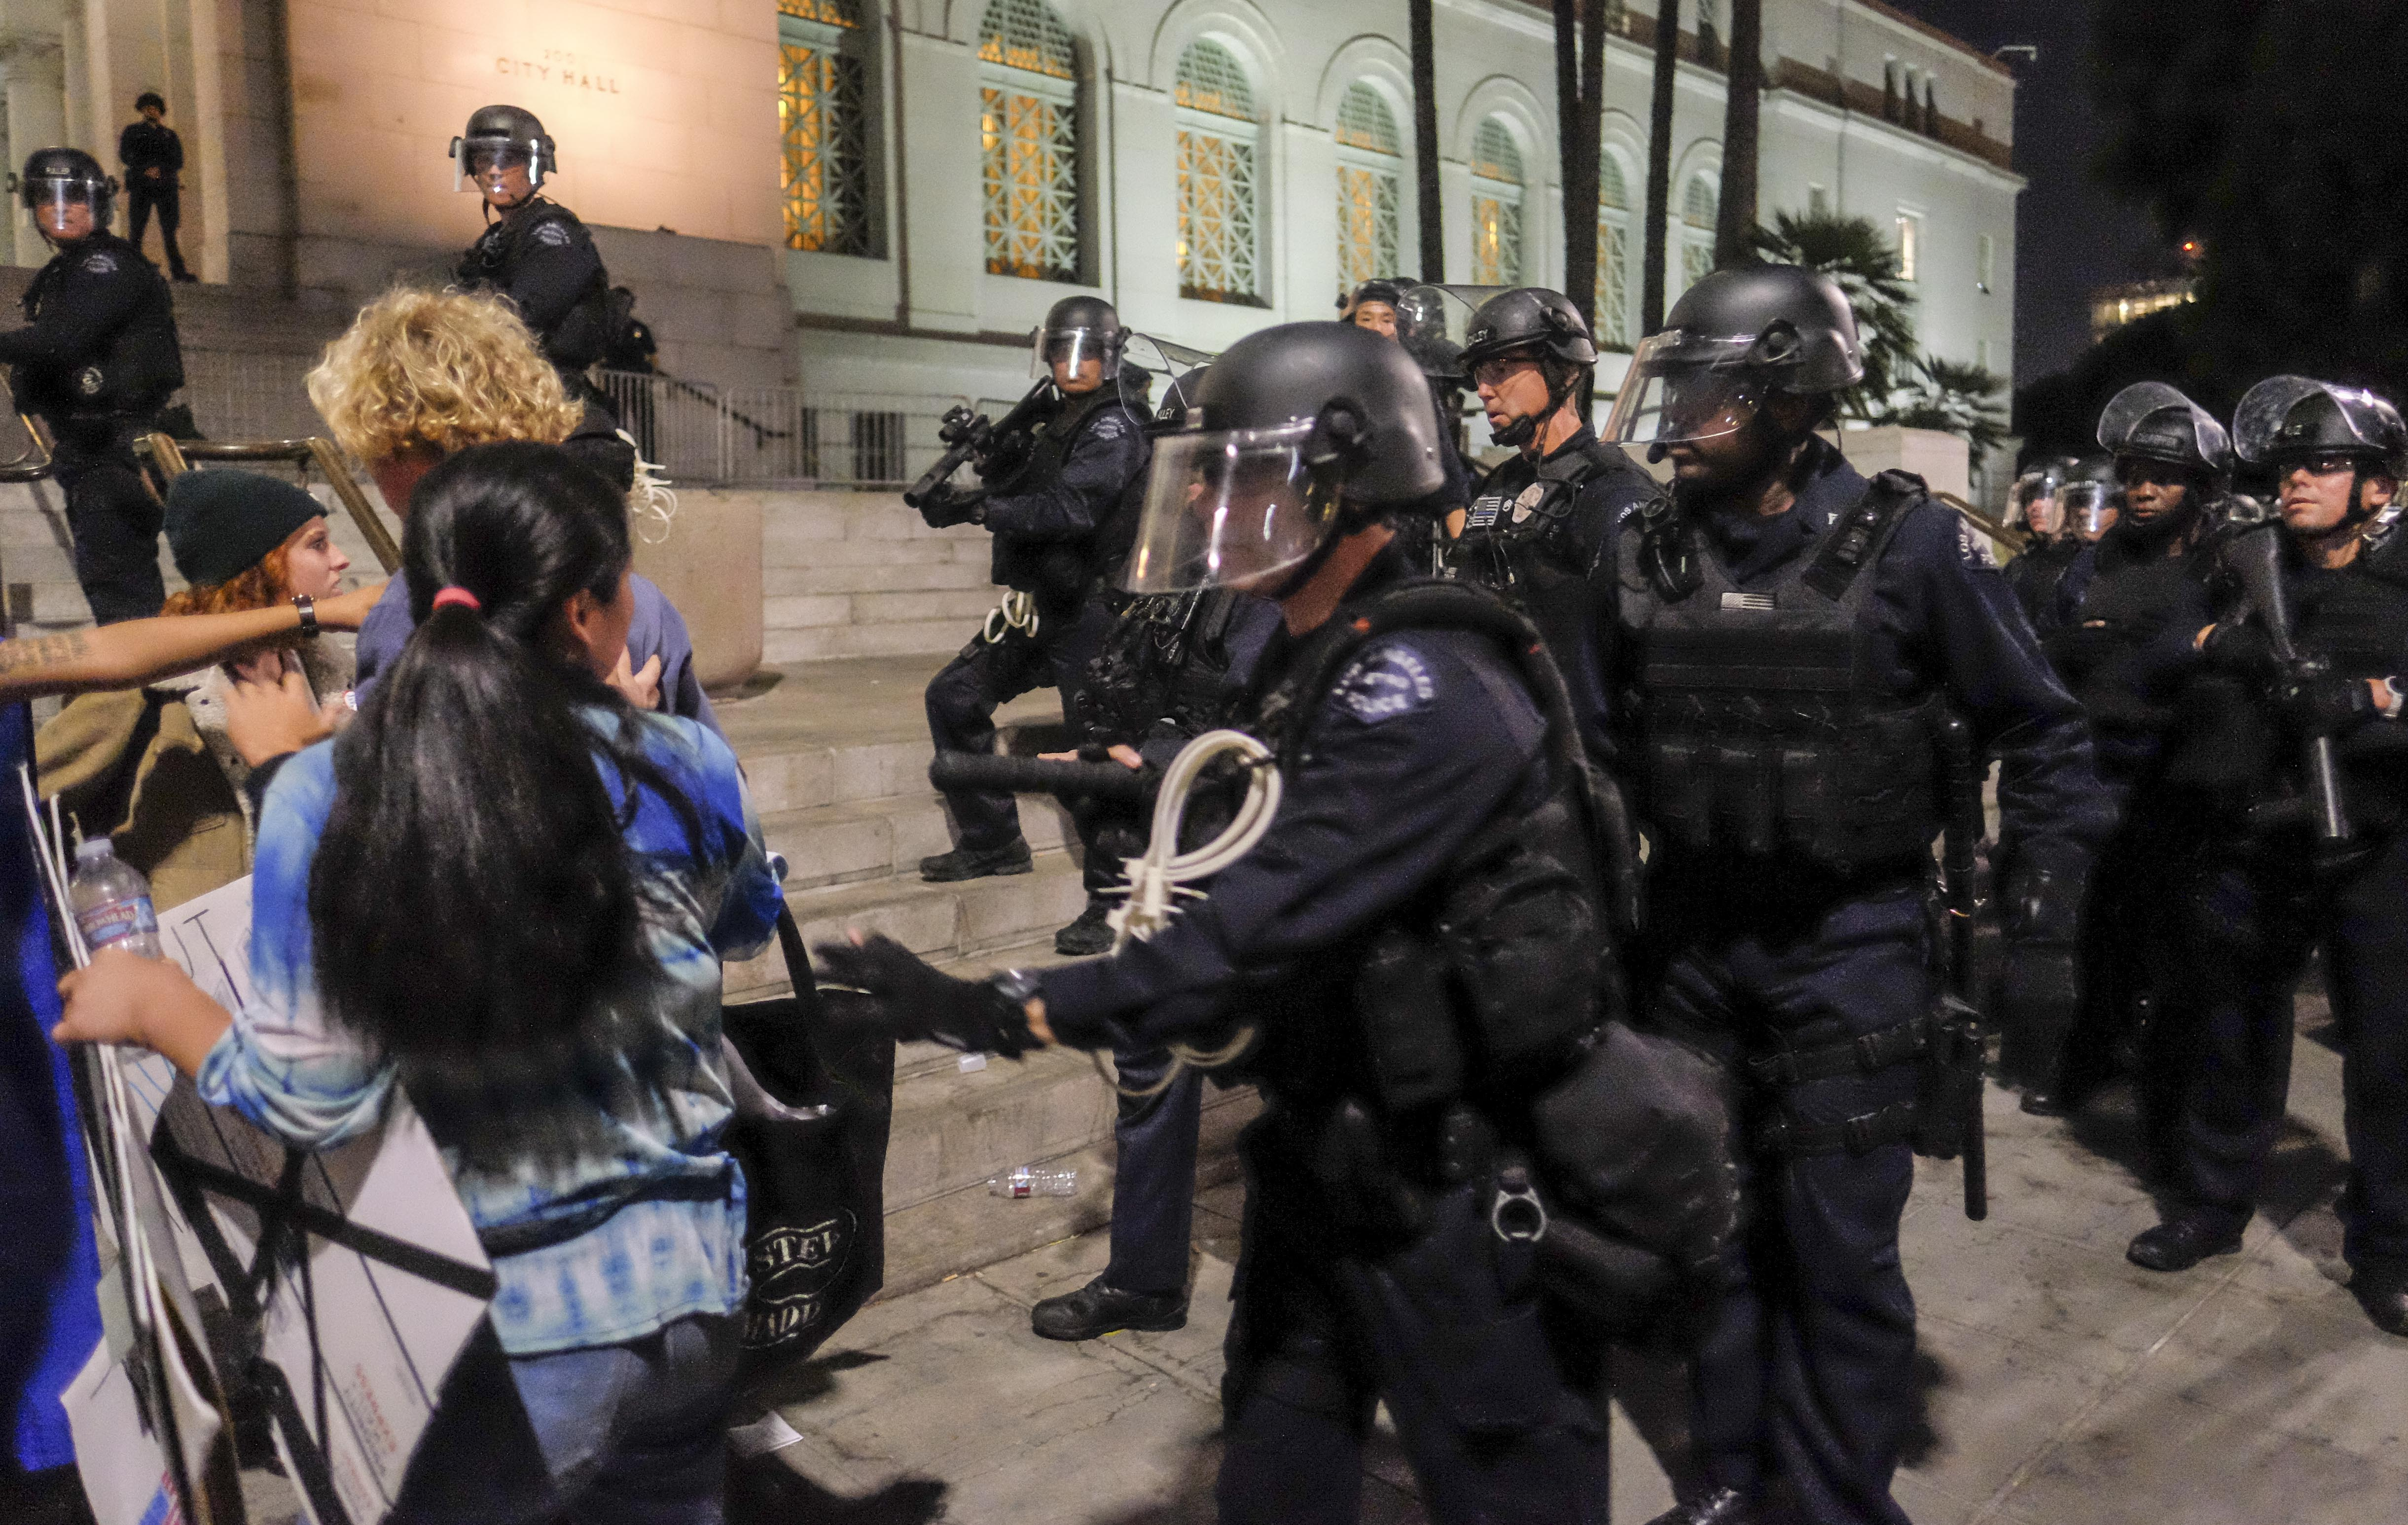 Police in riot gear confront demonstrators outside City Hall during a protest against President-elect Donald Trump in Los Angeles on Nov. 13, 2016. (Credit: RINGO CHIU/AFP/Getty Images)